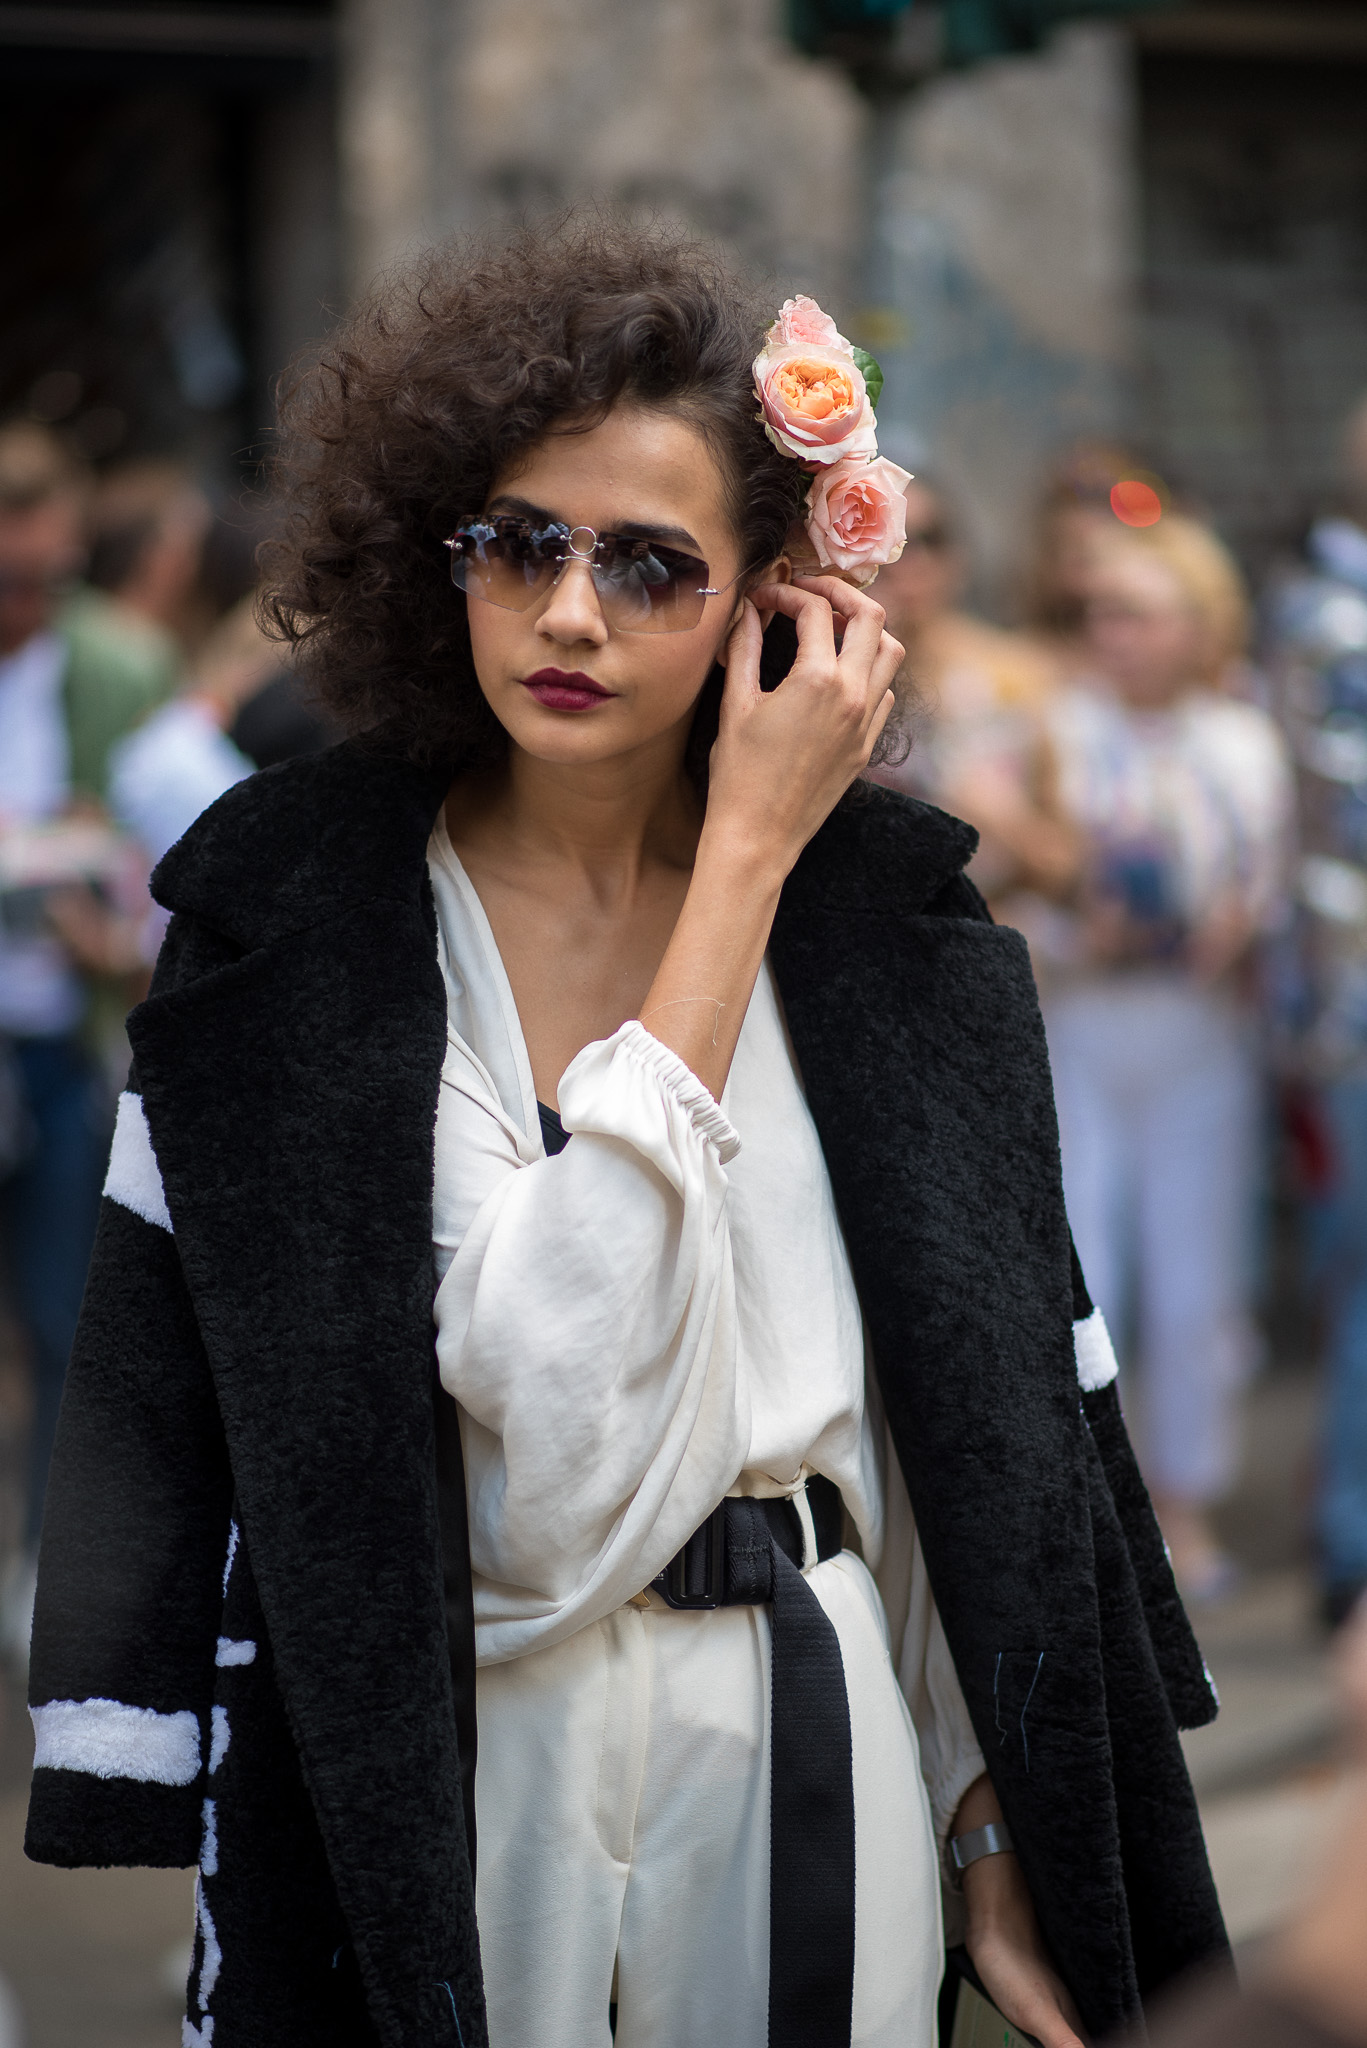 Fernanda Oliveira Models Off Duty Dolce & Gabbana Milan Fashion Week September 2017 Photography Annika Lagerqvist www.annikasomething.com